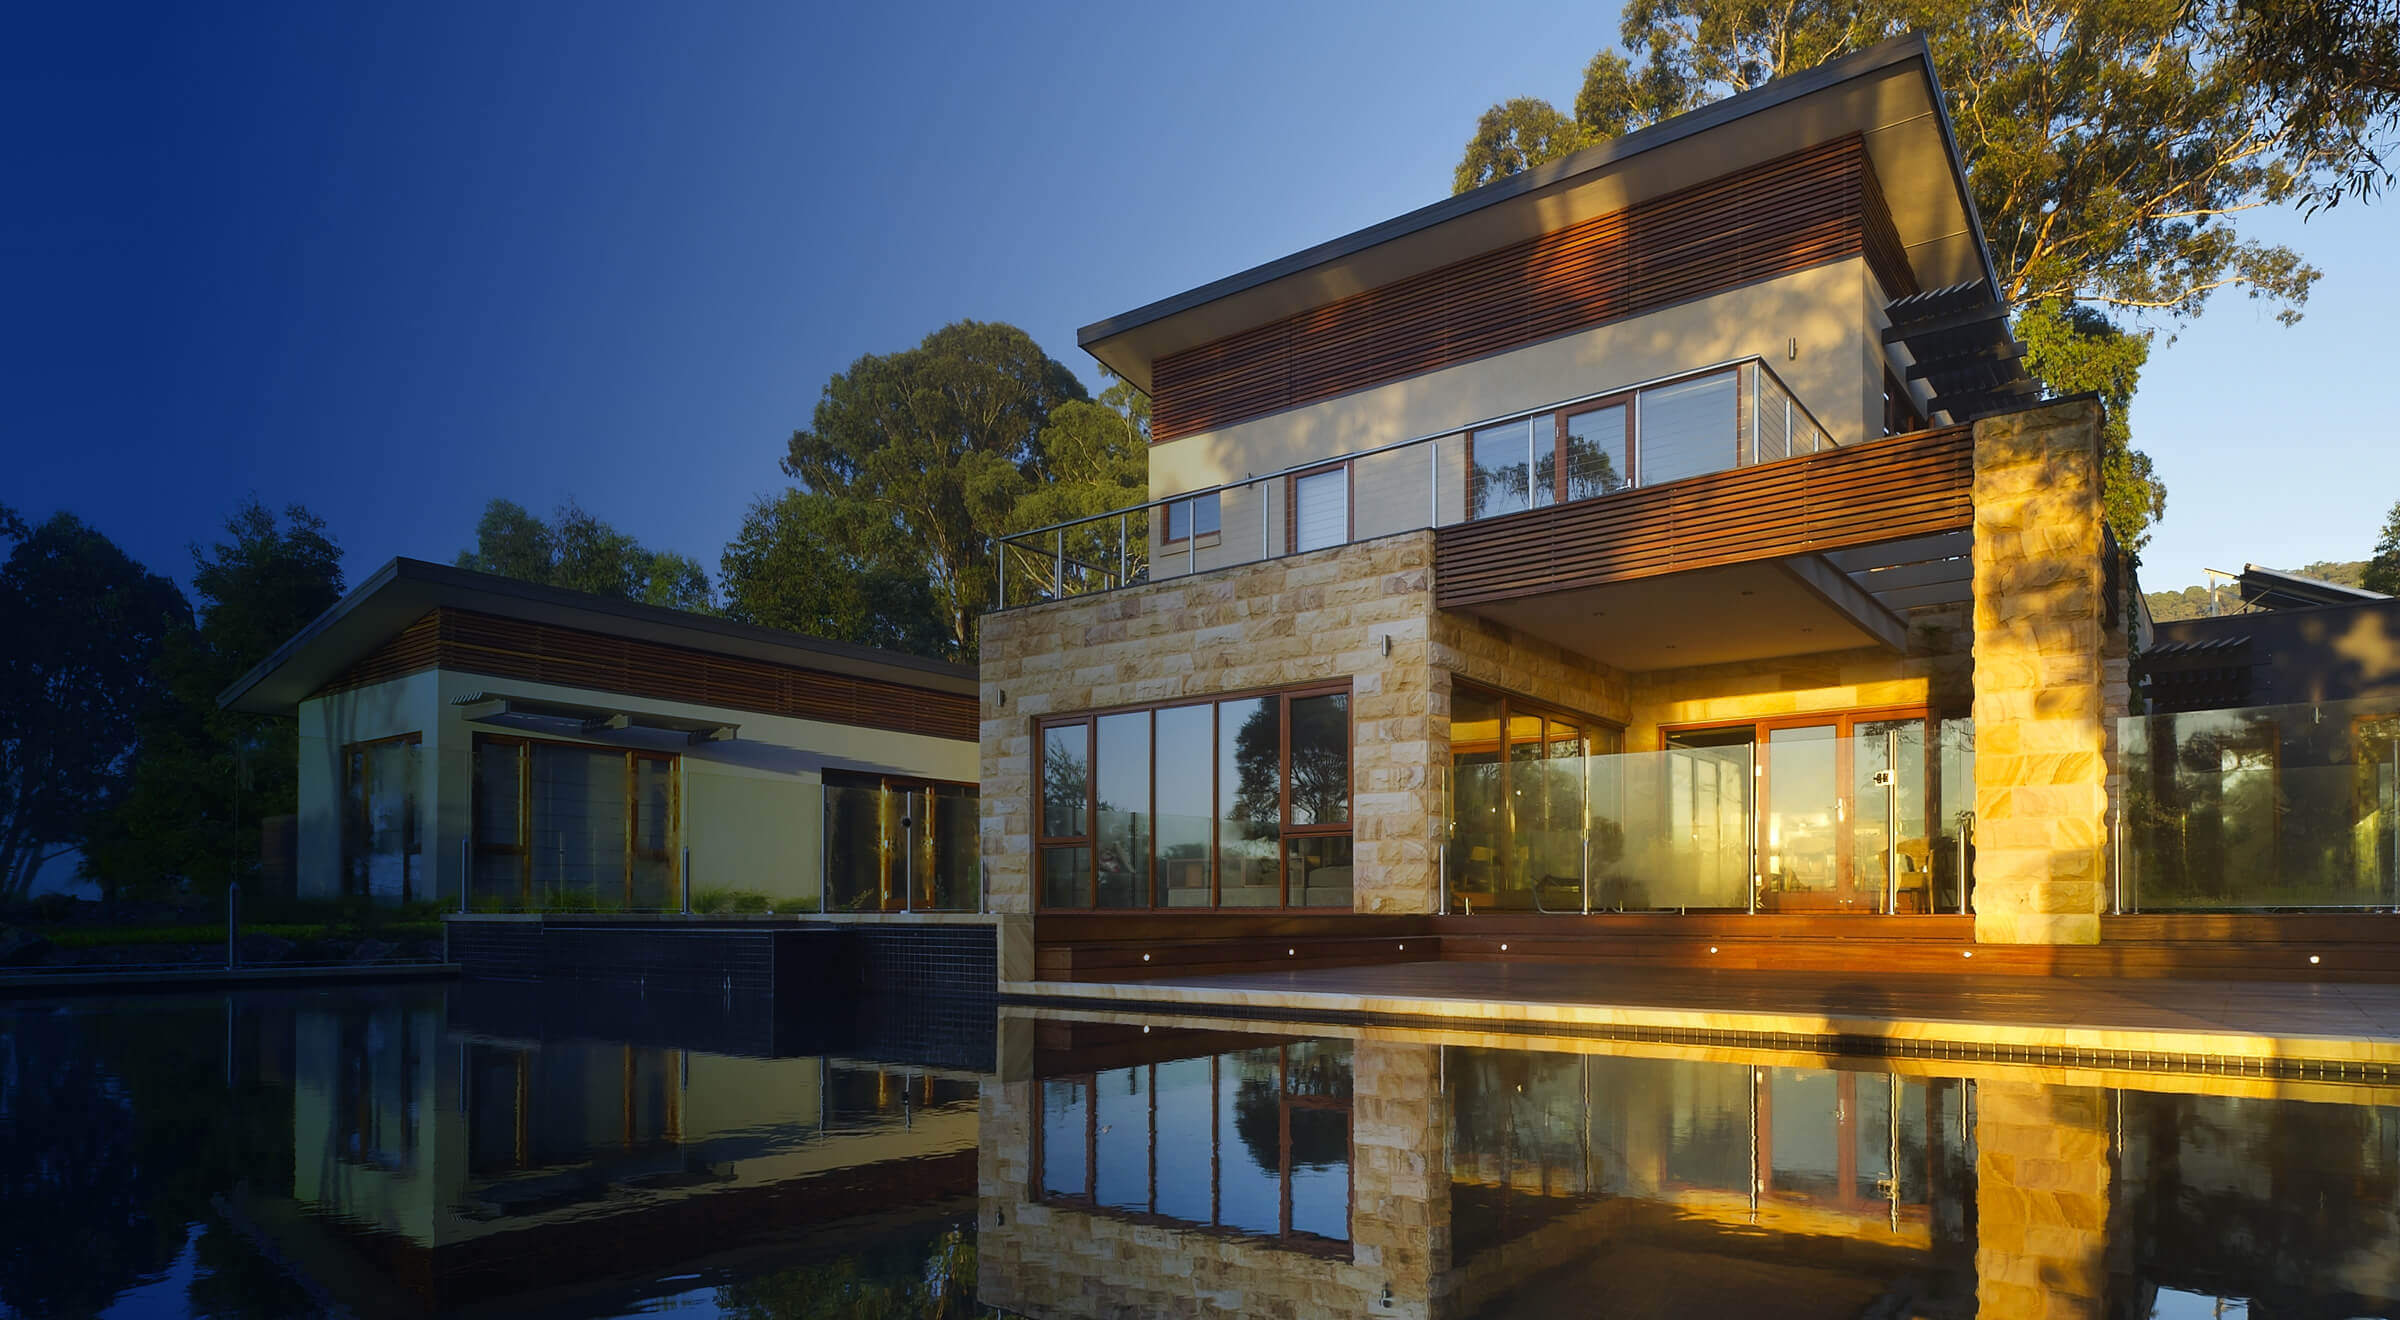 Home in a Bushfire Prone Area - Designing Home